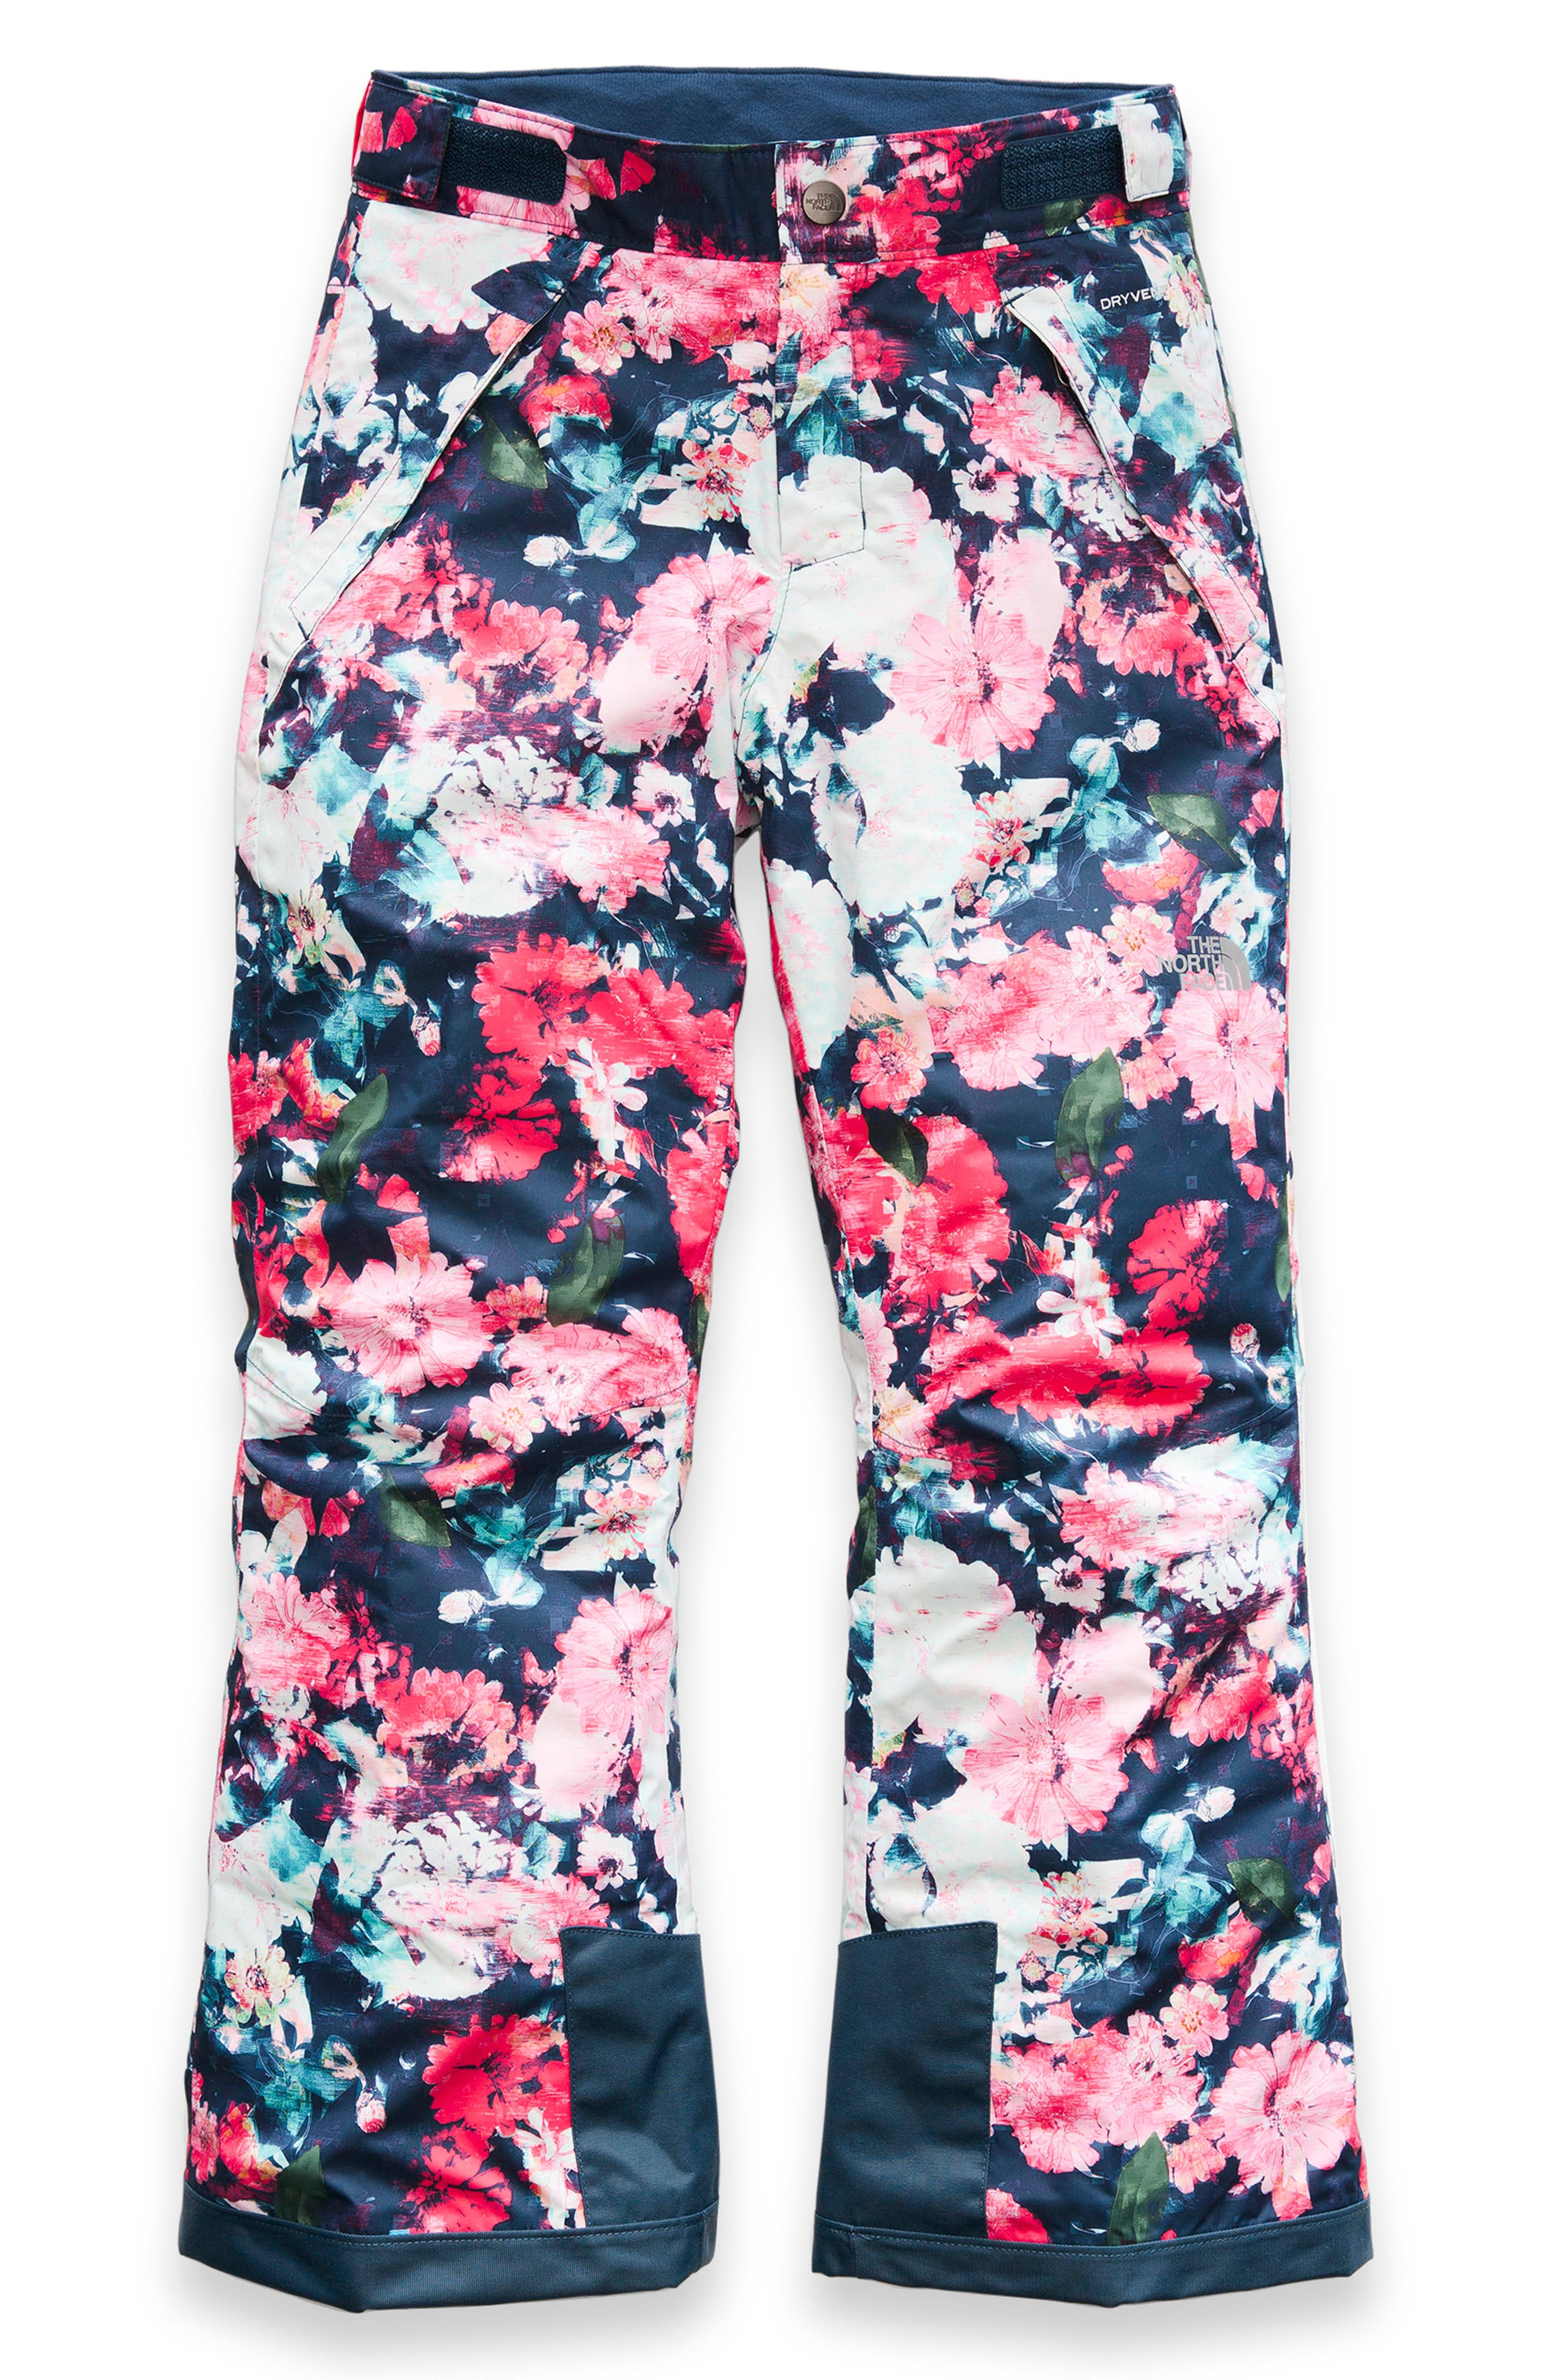 Freedom Waterproof Insulated Snow Pants,                             Main thumbnail 1, color,                             ATOMIC PINK FLORAL